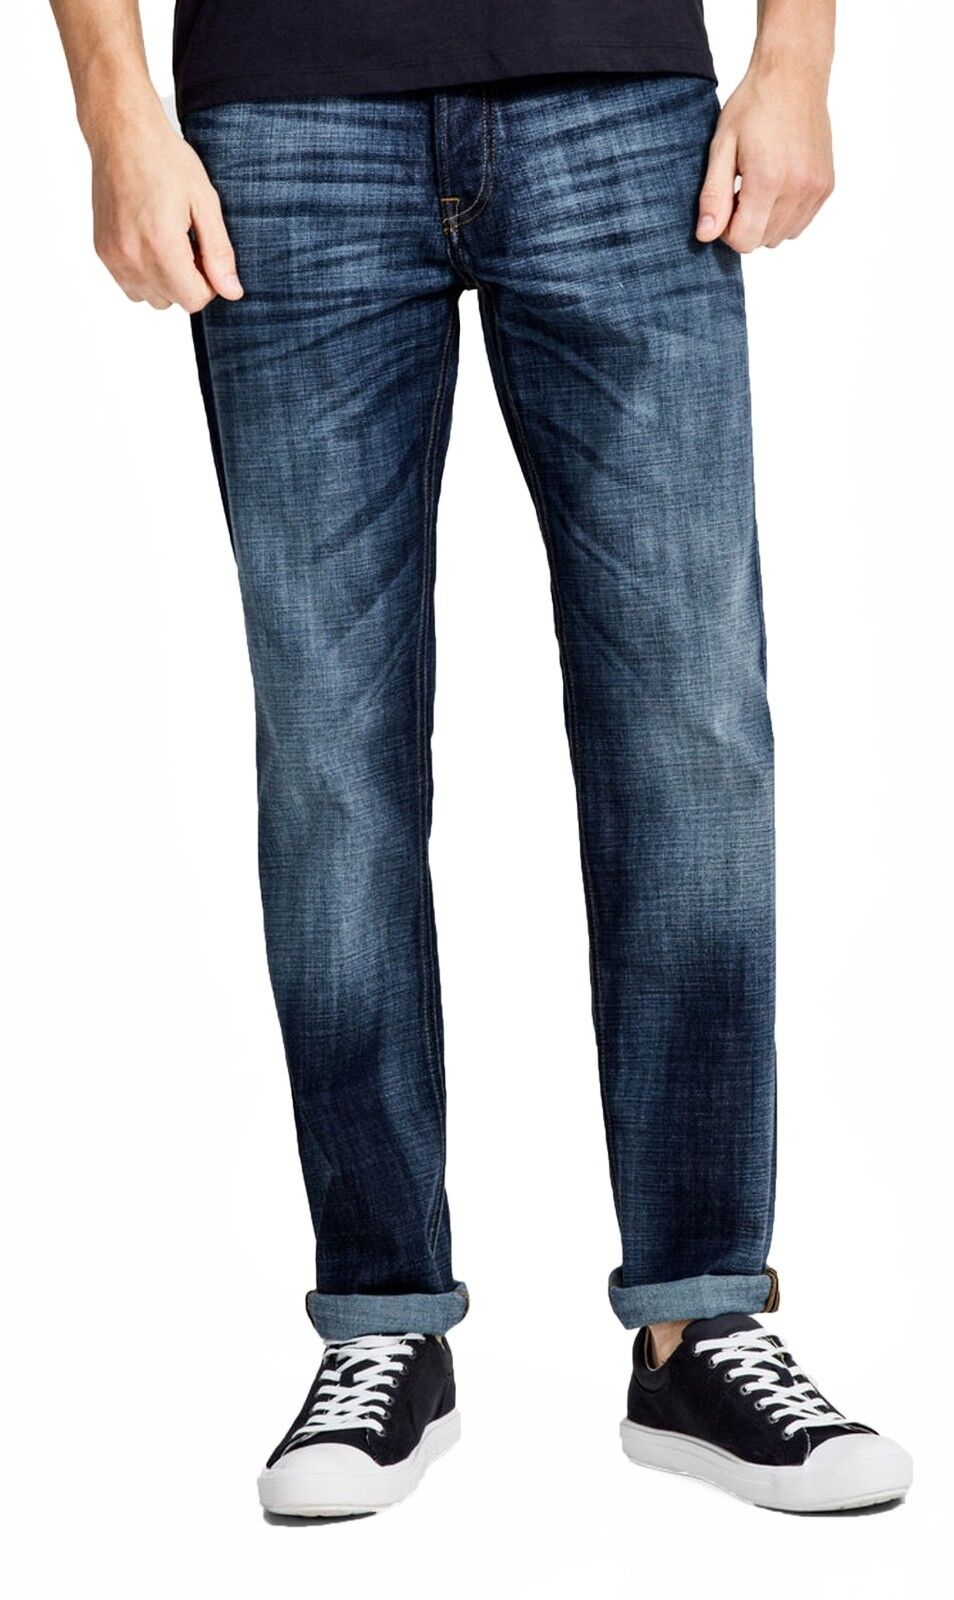 JACK & JONES Jeans Mens Clark Regular Fit Straight Denim Pants GE255 Blau Rinsed